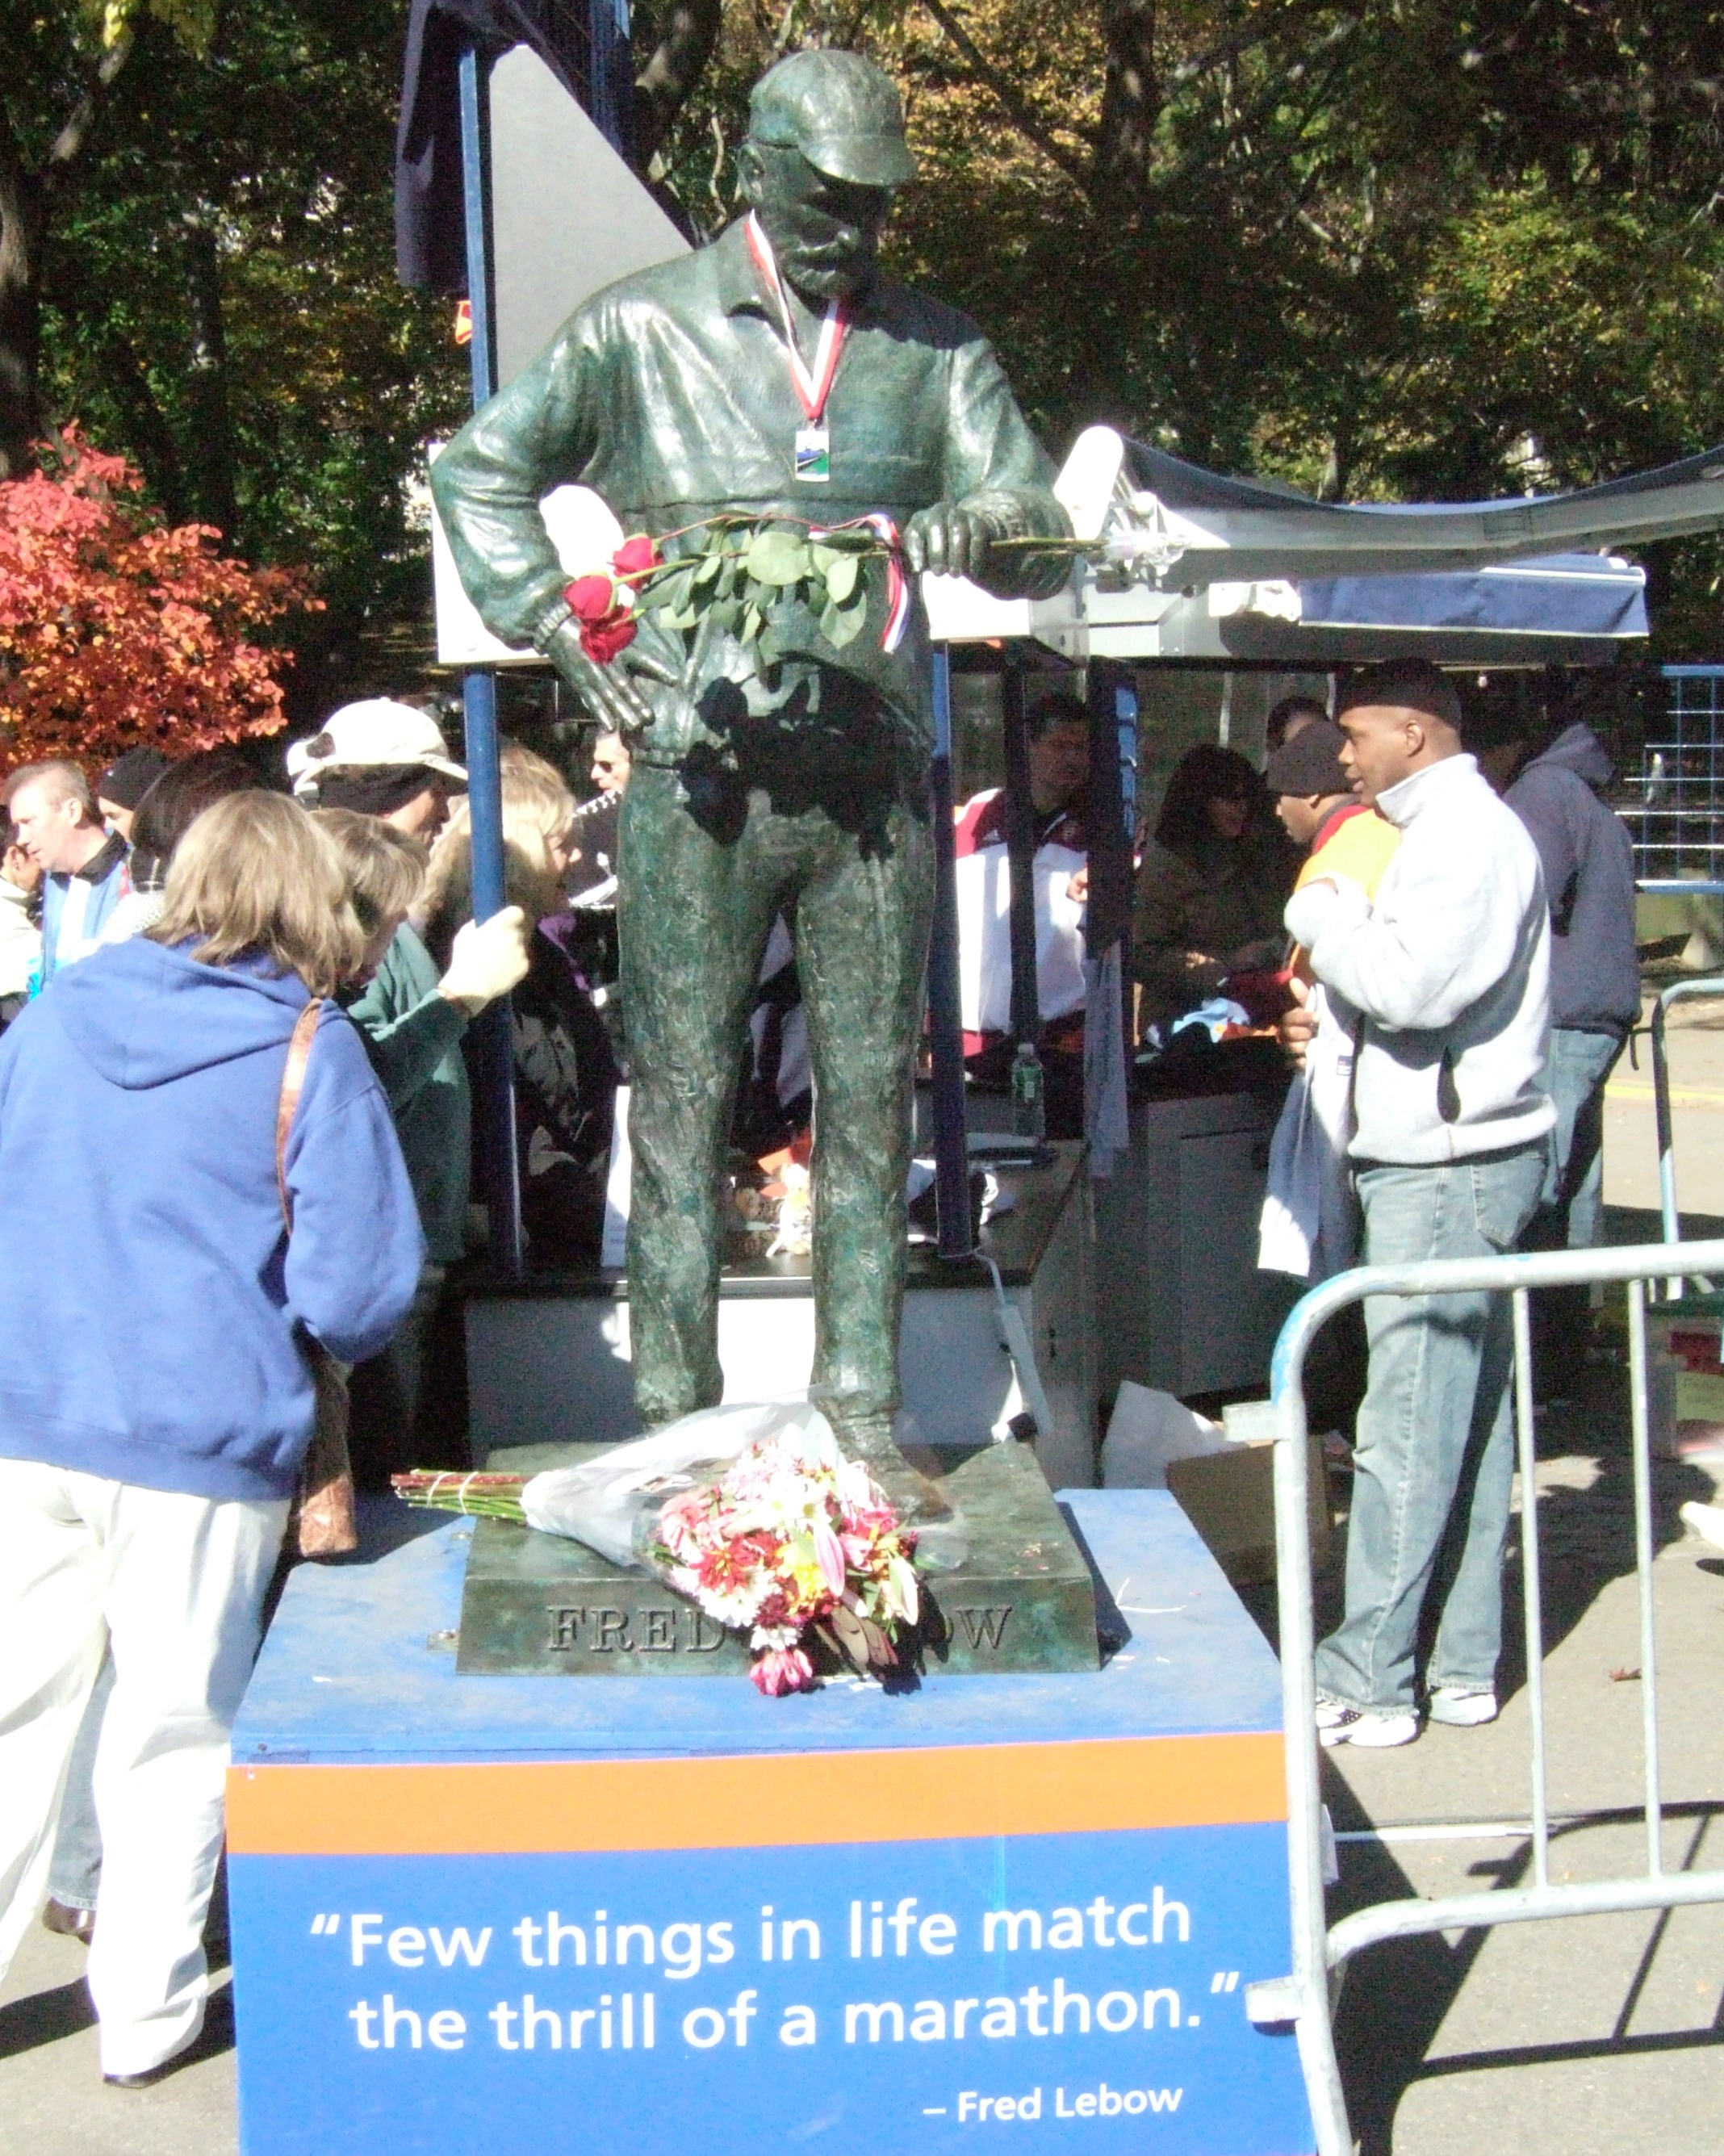 Fred Lebow Sculpture, NYC Marathon